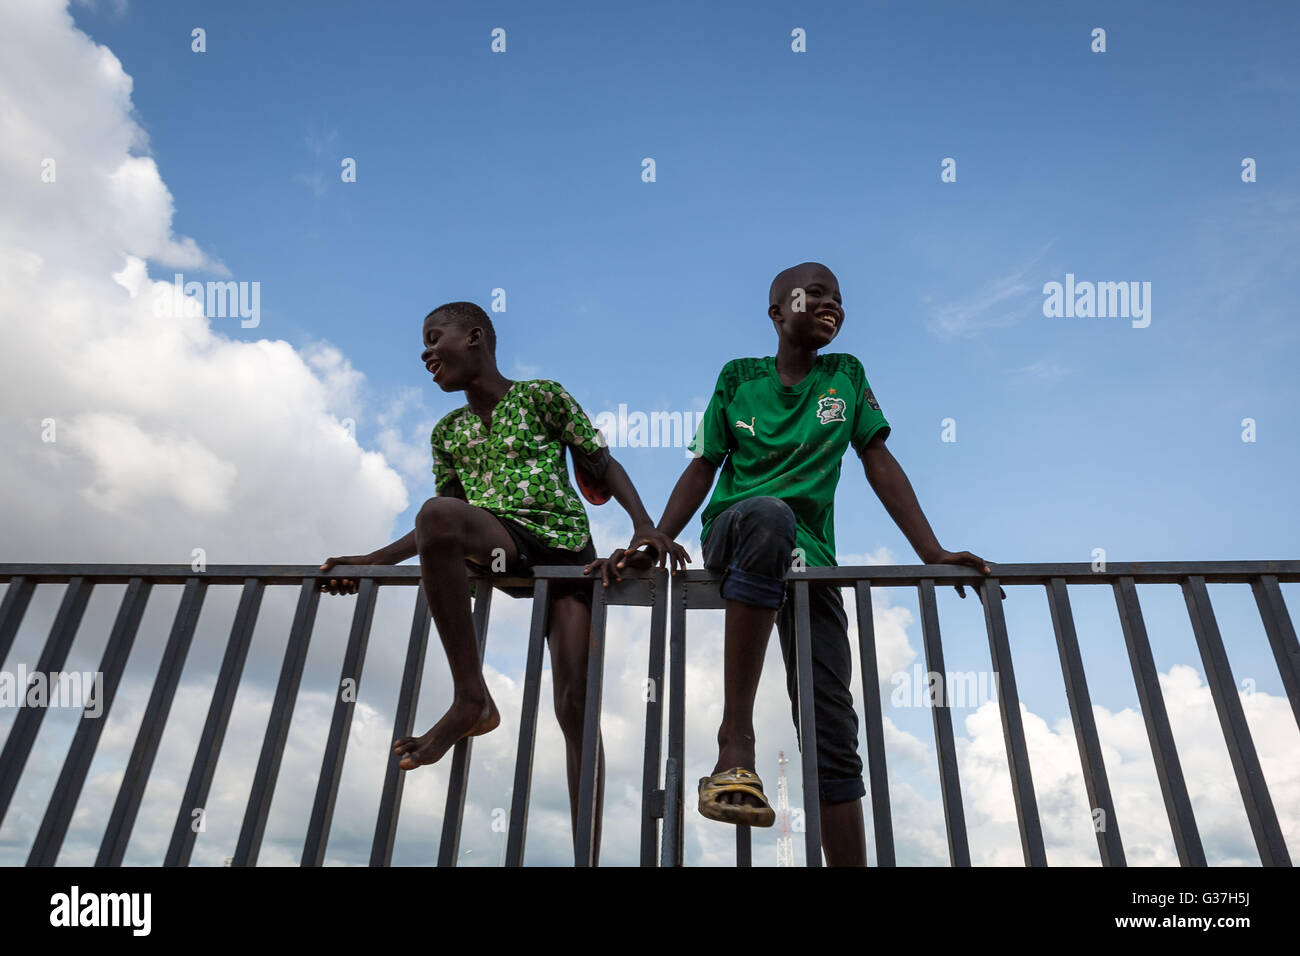 Young local boys pose for a photo in Bouaké, Côte d'Ivoire, West Africa - Stock Image